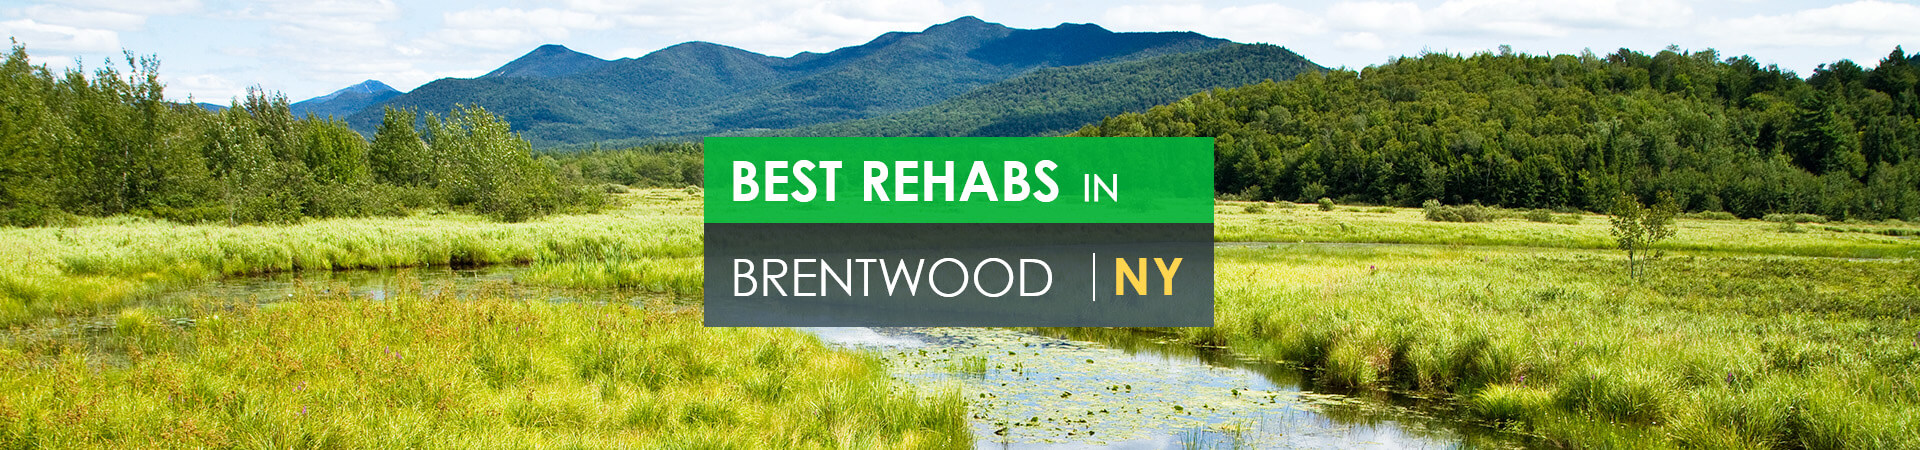 Best rehabs in Brentwood, NY